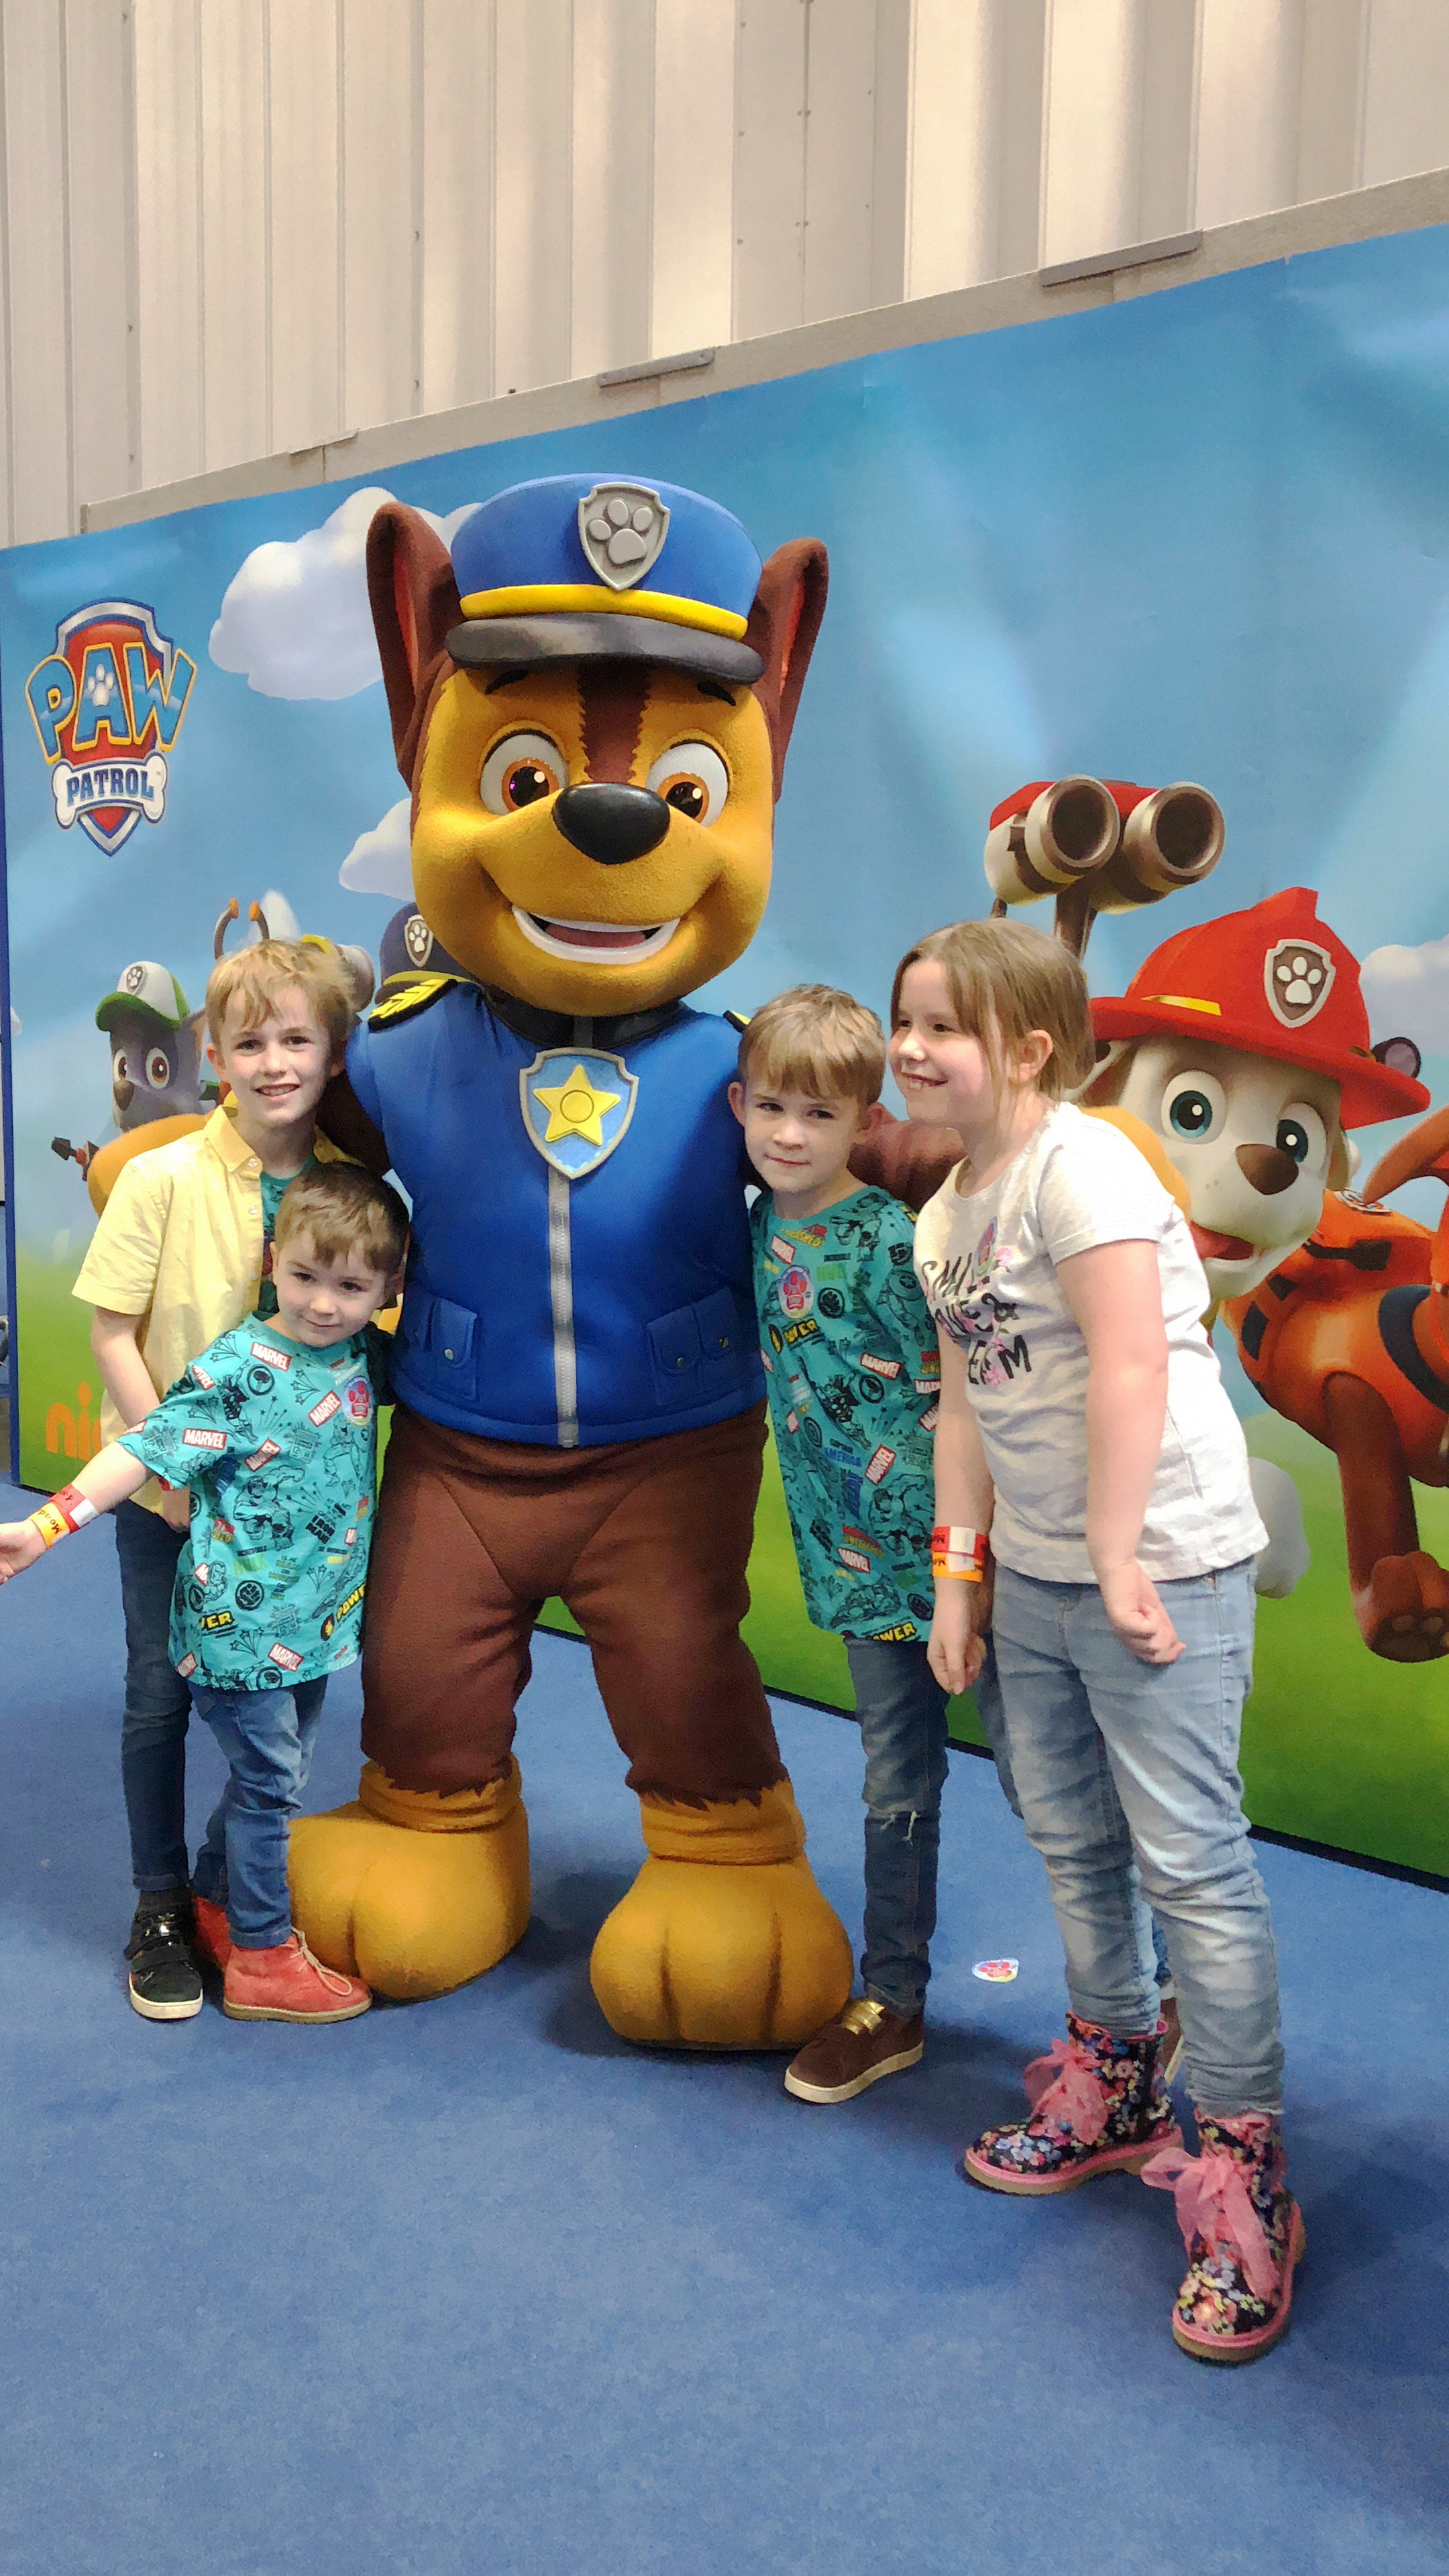 PAW PATROL LITTLE HEROES PAW AWARDS 2019